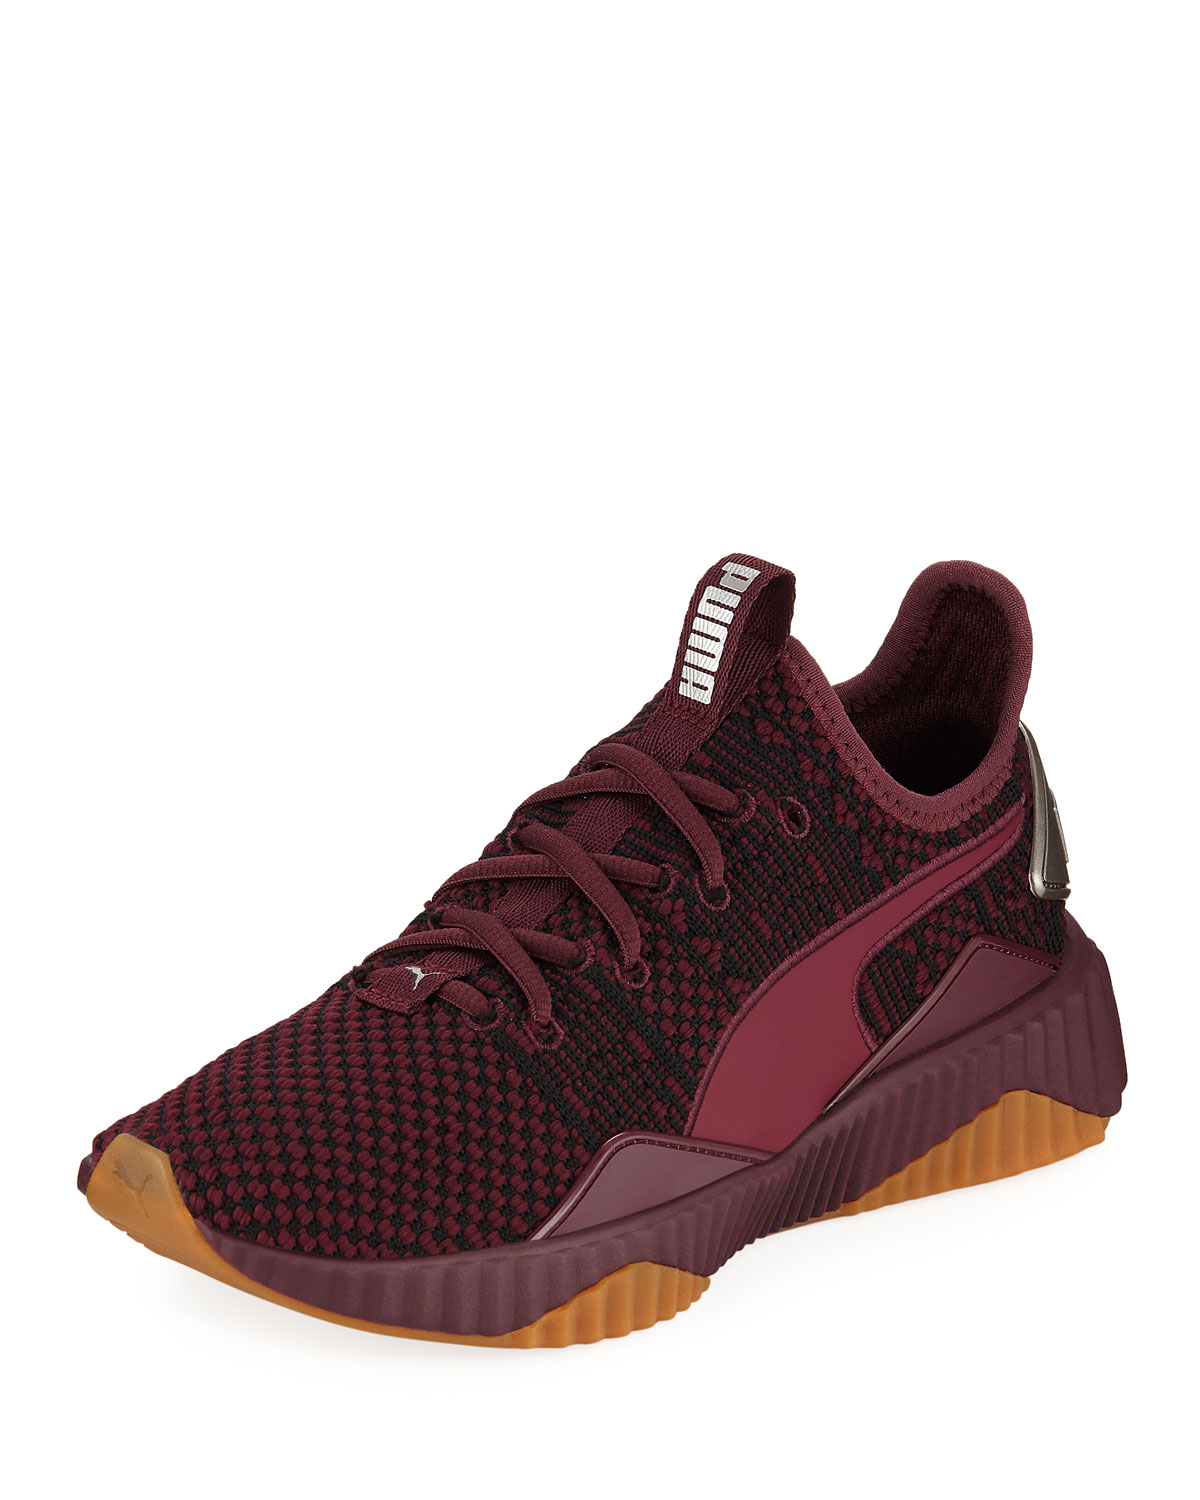 0692bf599a6 Puma Defy Luxe Chunky Sneakers